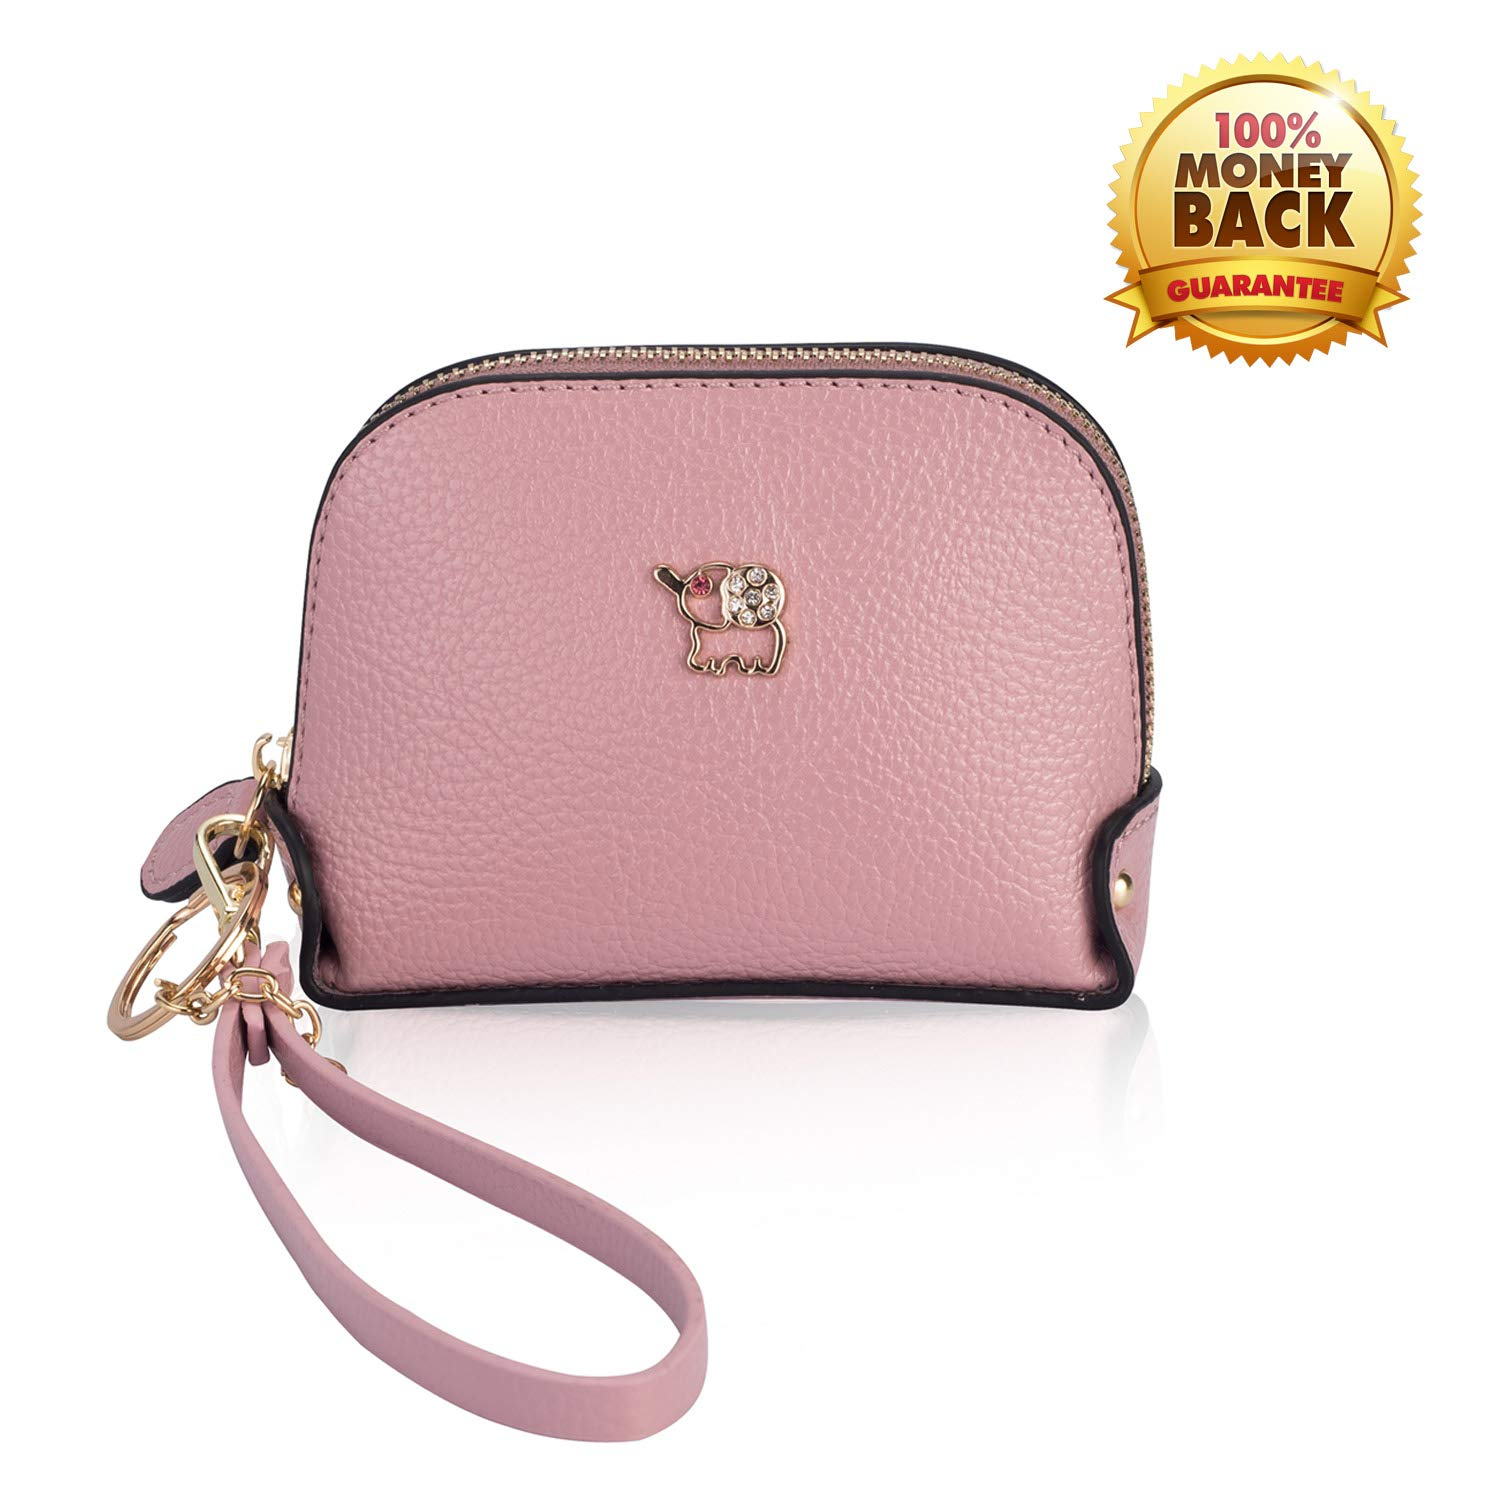 Coin Purse Wallet leather Wristlet Handbags with Wrist Strap Cute Mini Designer Pouch Great Gifts for Women Girls(Elephant Pink) by JZE (Image #1)